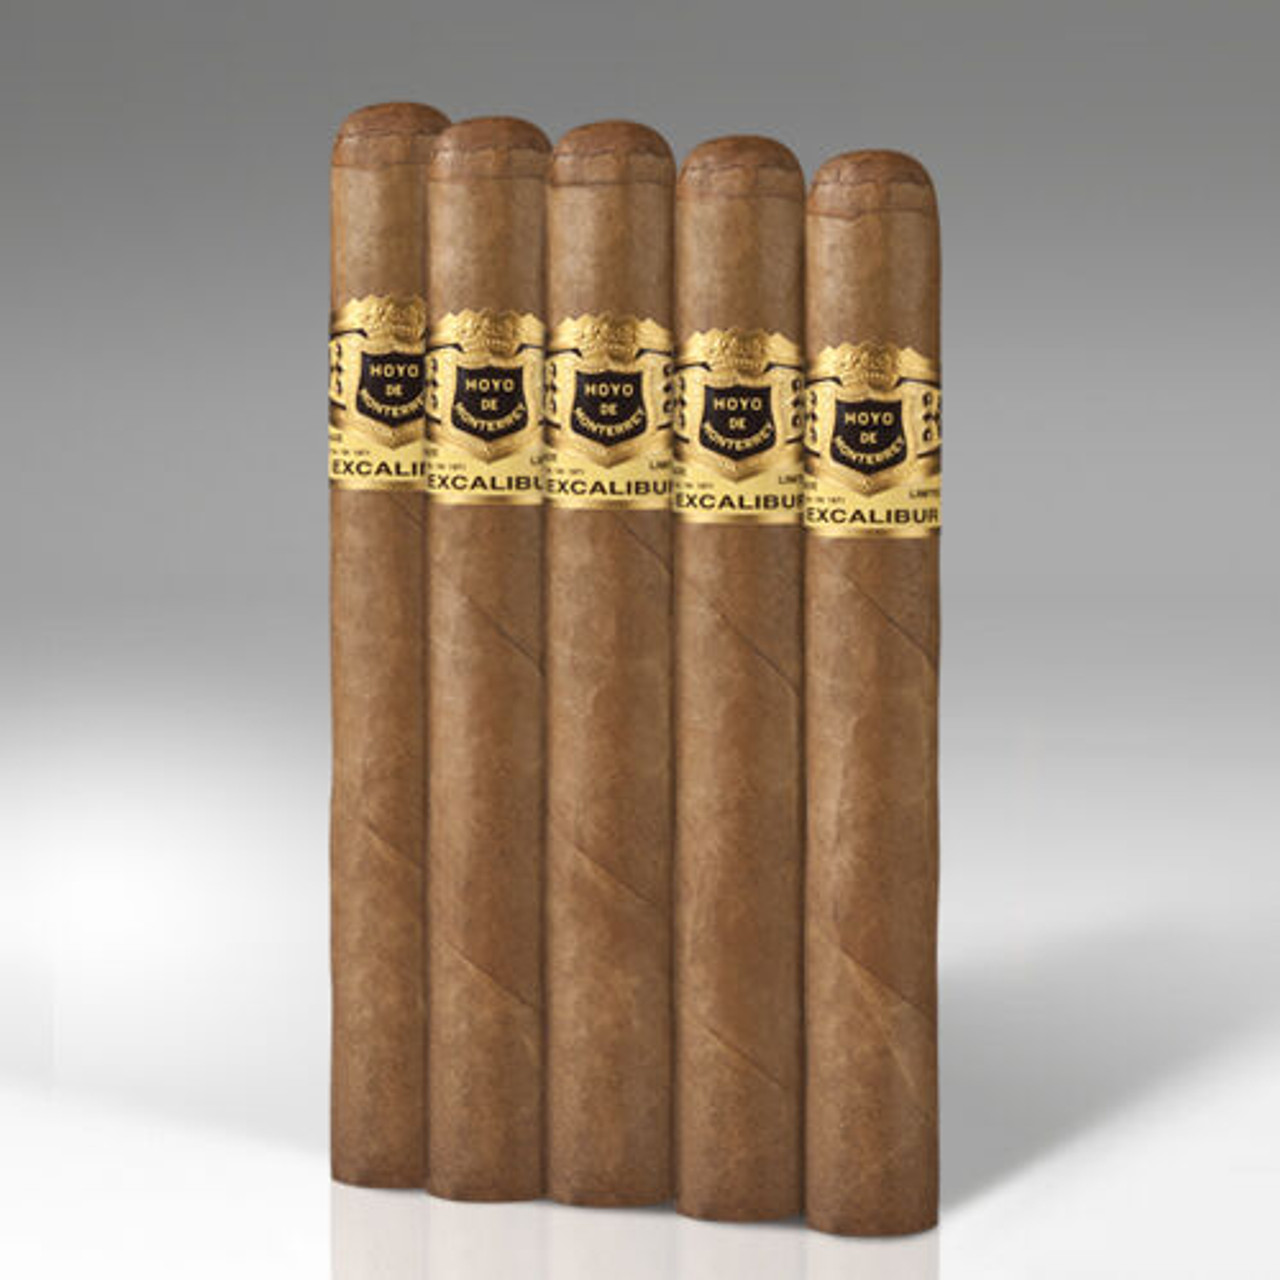 Excalibur No. III Cigars - 6.12 x 48 (Pack of 5)